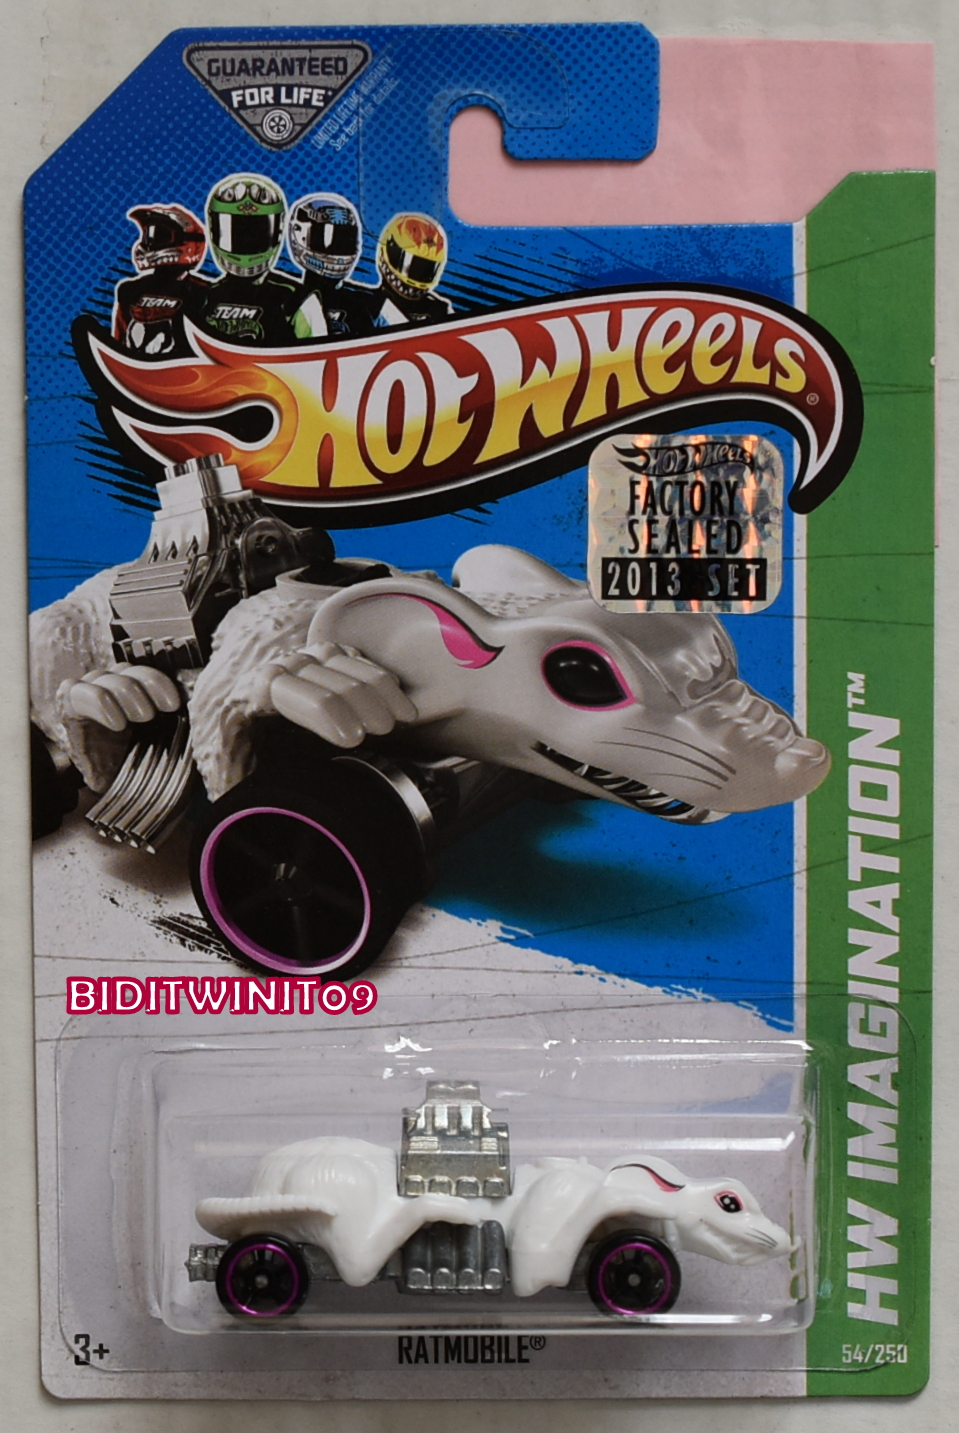 HOT WHEELS 2013 HW IMAGINATION STREET PESTS RATMOBILE WHITE FACTORY SEALED